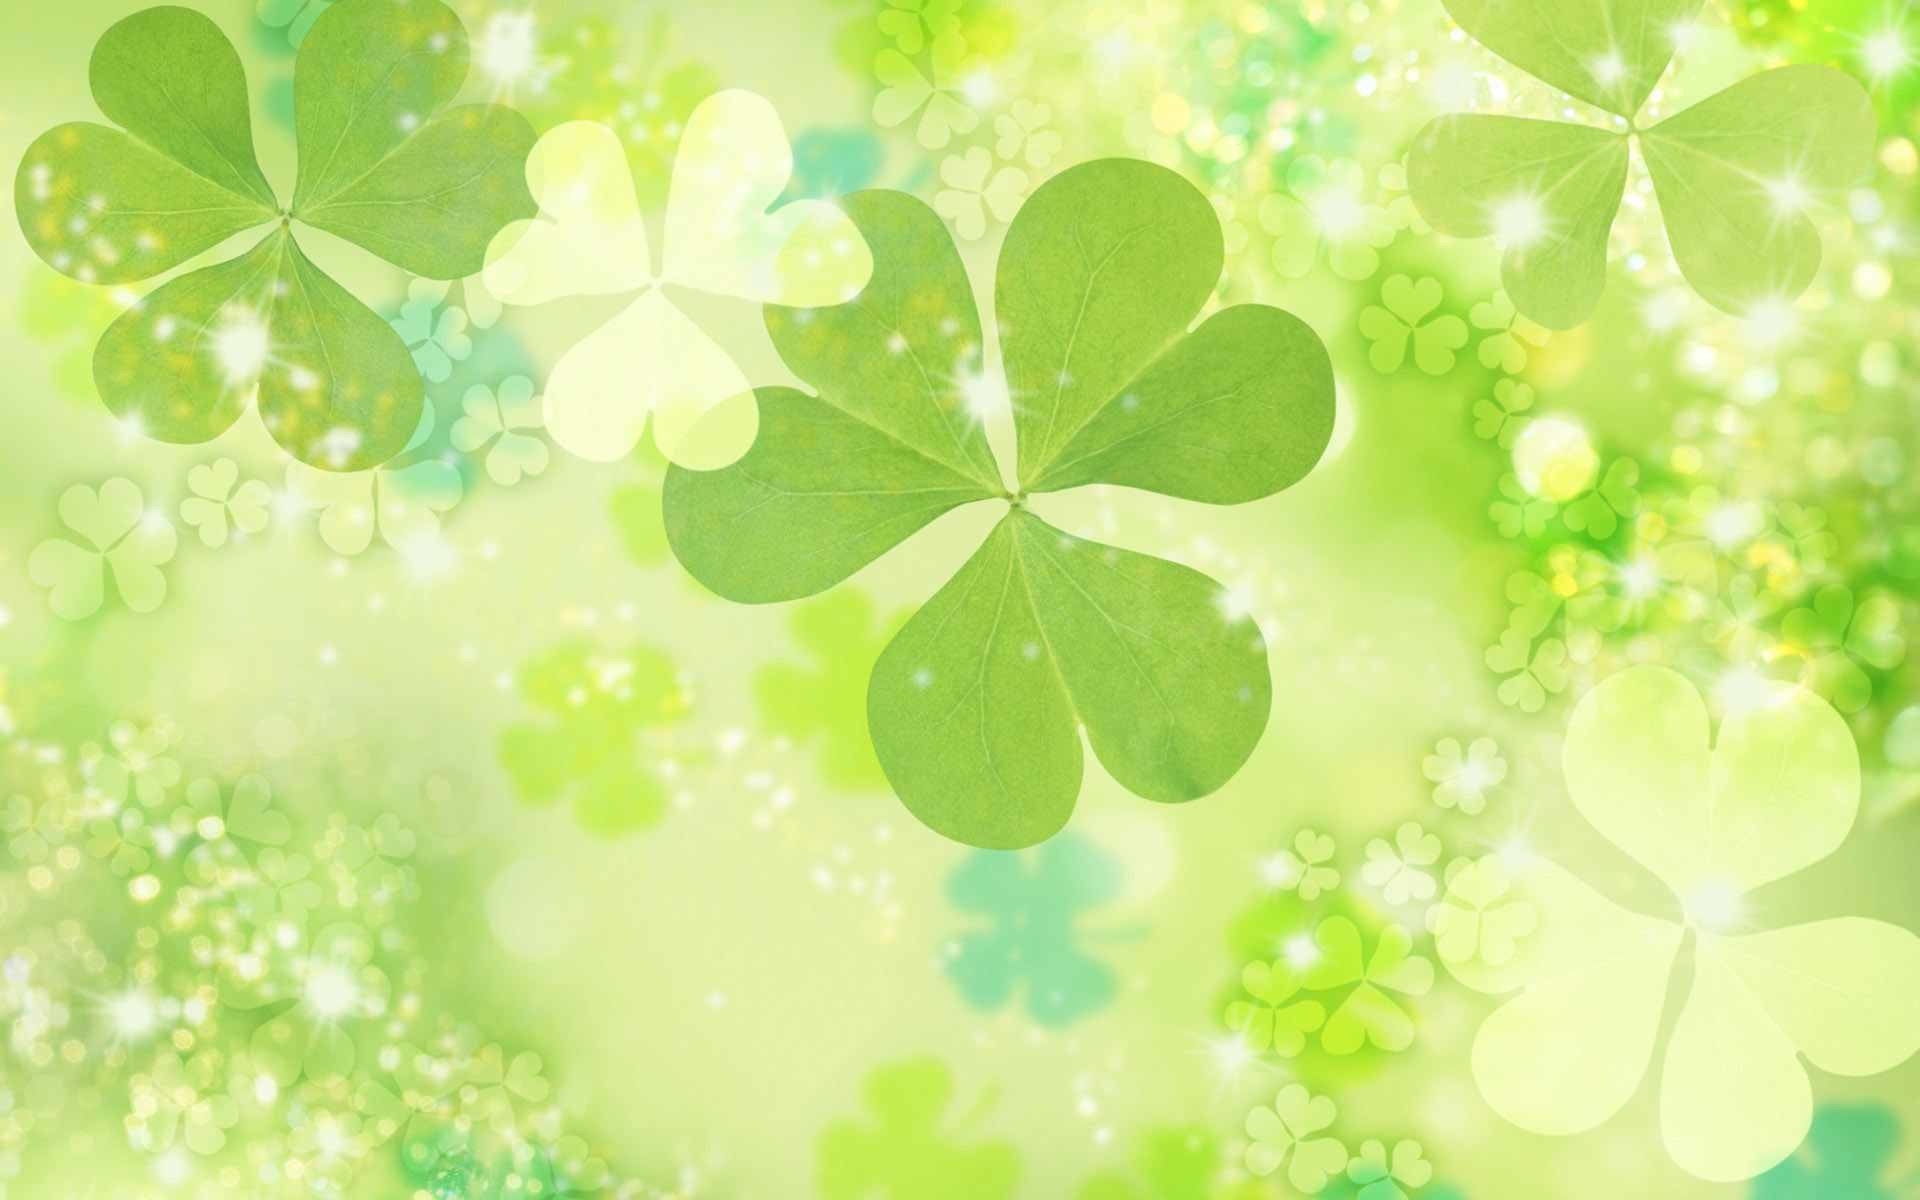 St Patricks Day Backgrounds 52 images 1920x1200